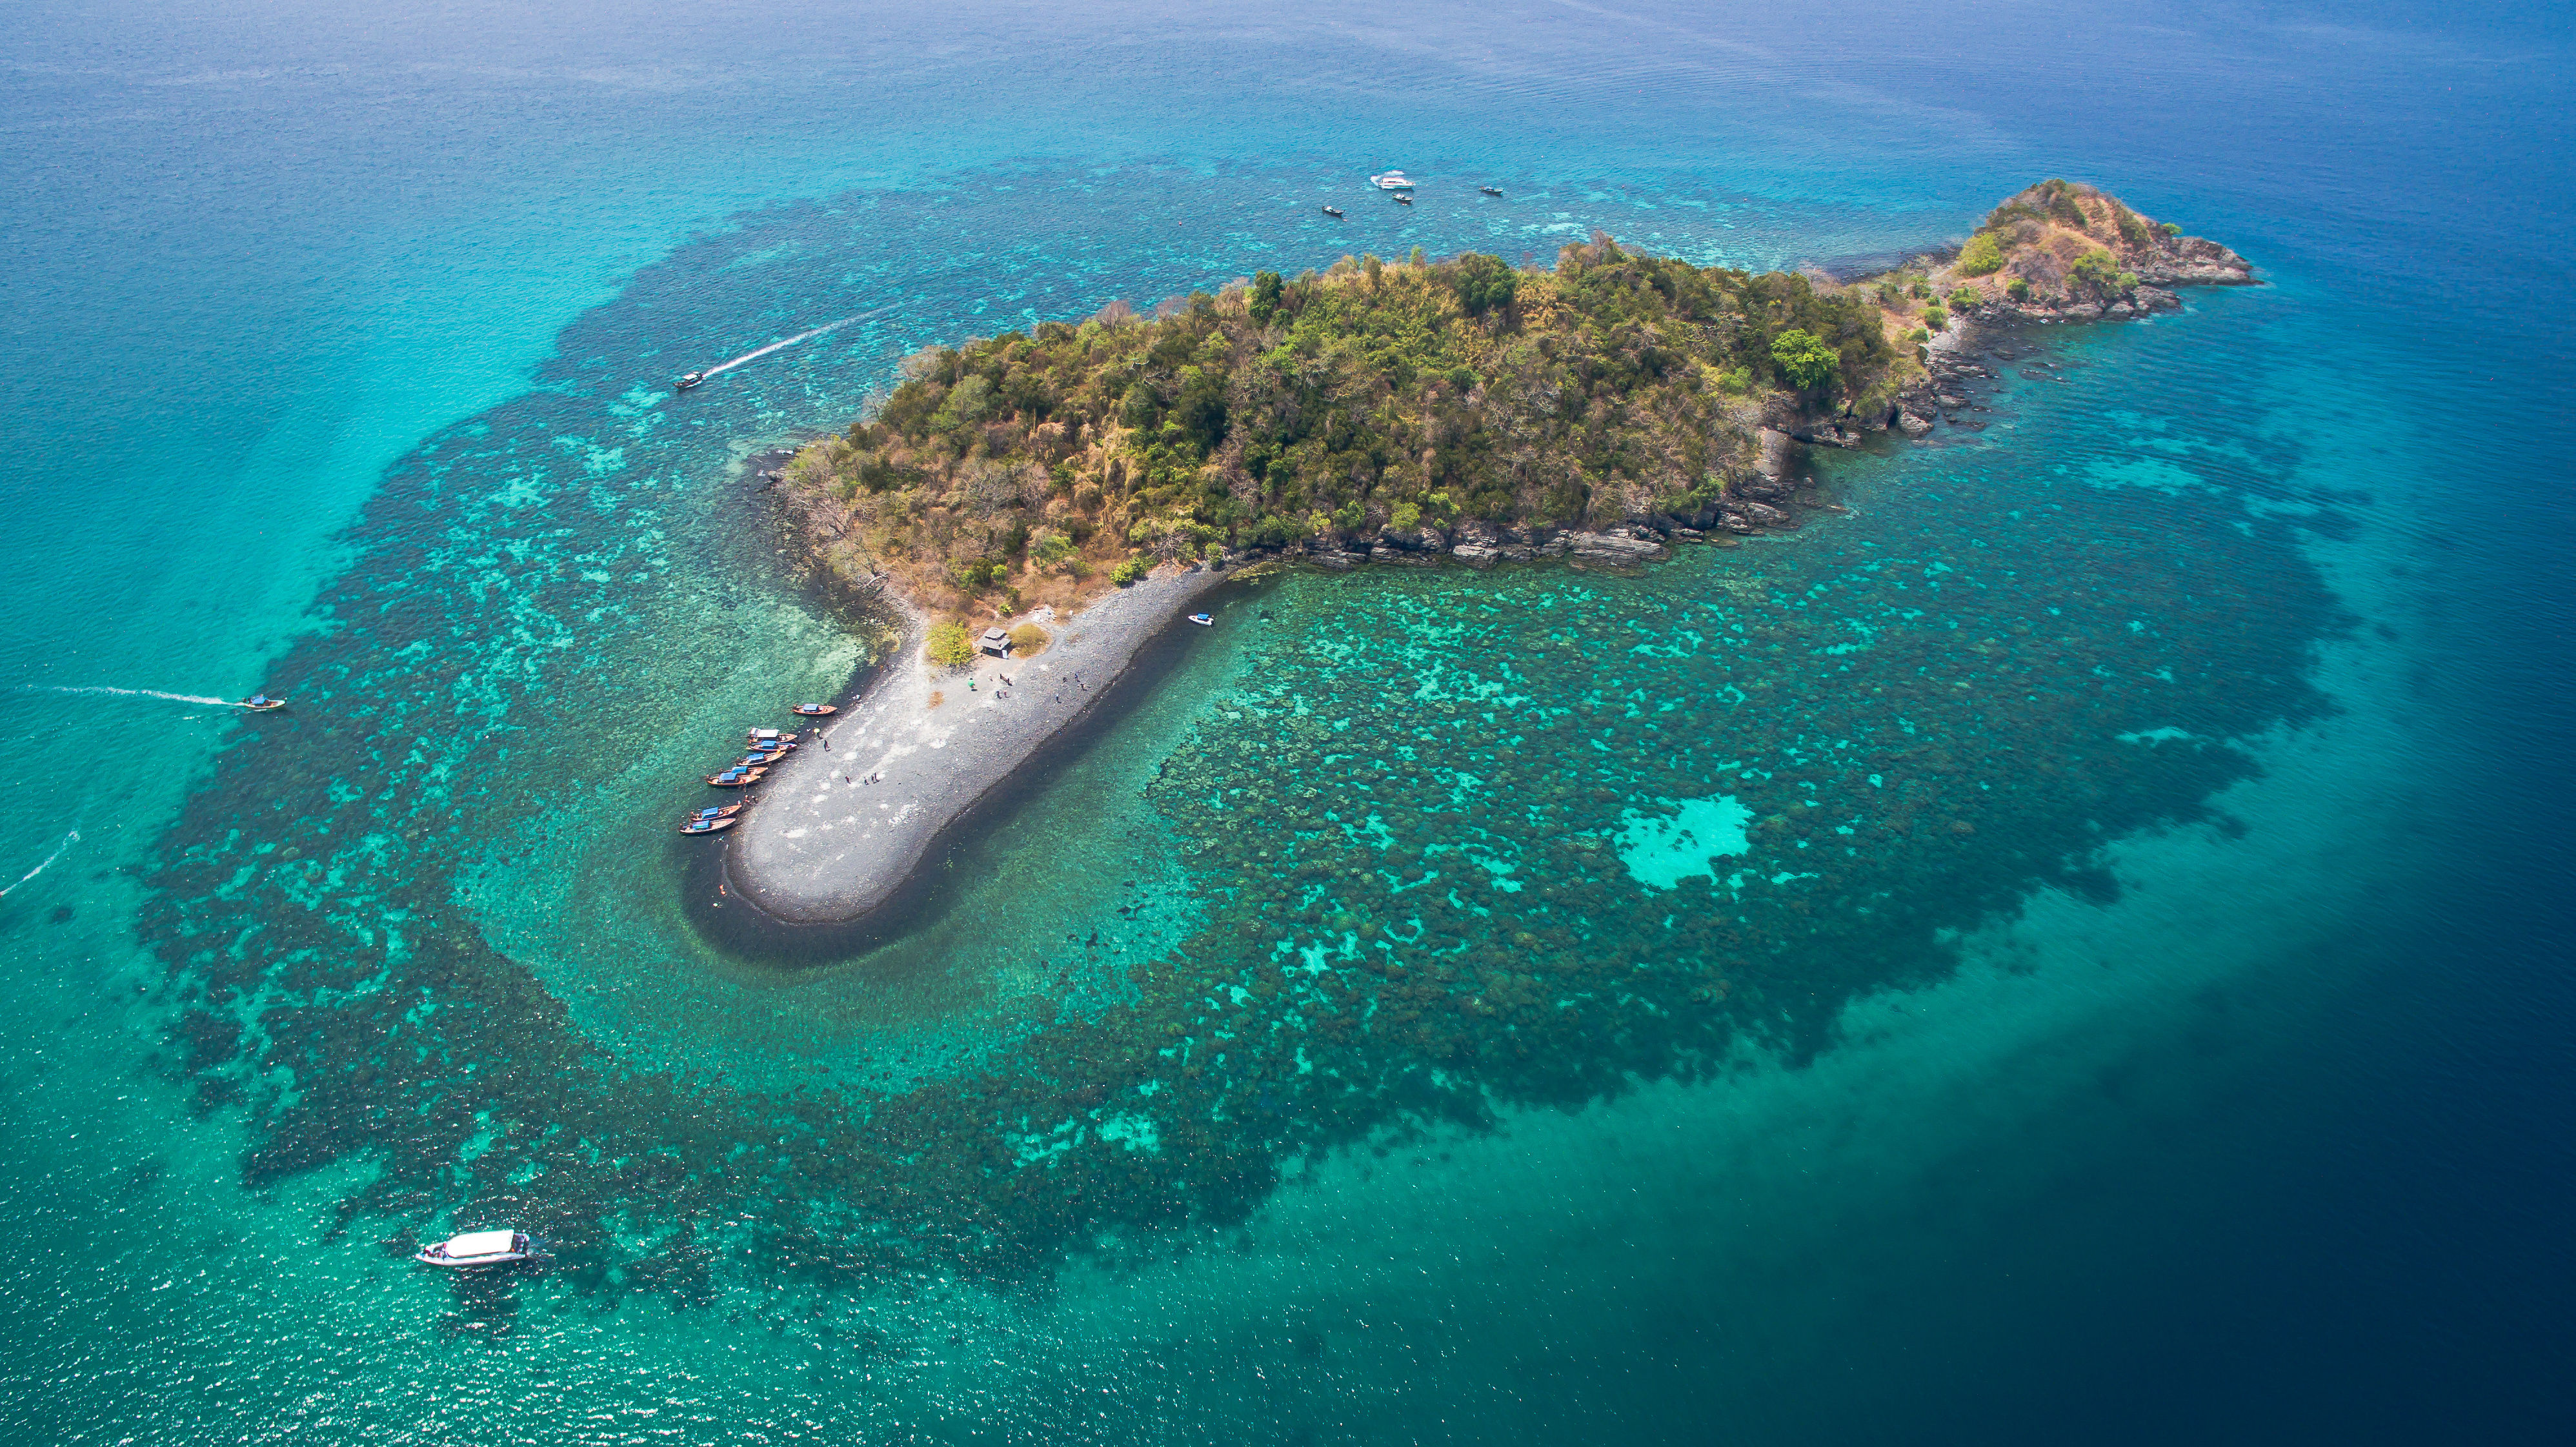 Aerial view of tropical island surrounded by shallow reef and boats in Satun, Thailand.